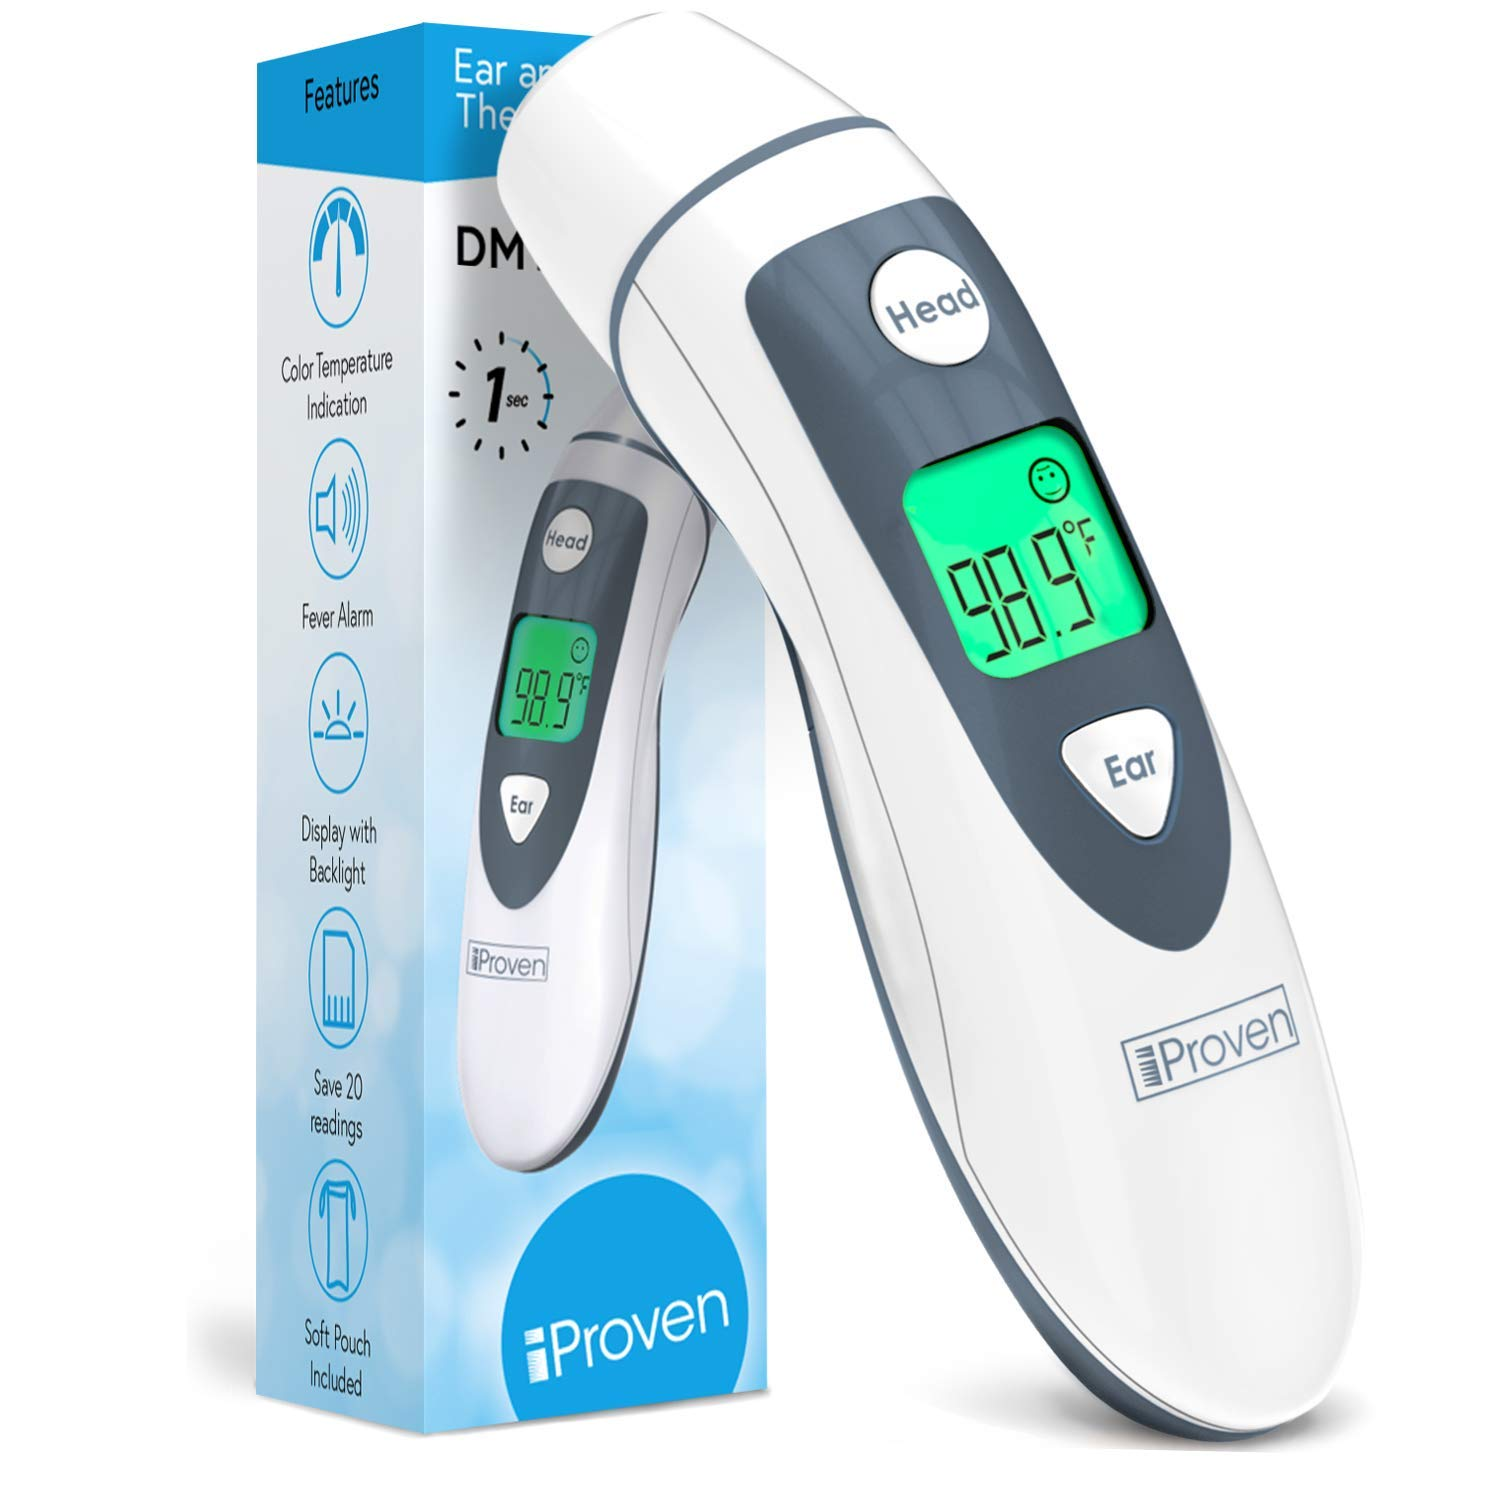 iProven DMT-489 Ear and Head Thermometer, Digital Infrared for Adults, Kids and Baby, Medical Forehead and Health Care Accuracy, FSA or HSA Eligible, Easy to Use Touchless Temporal Readings